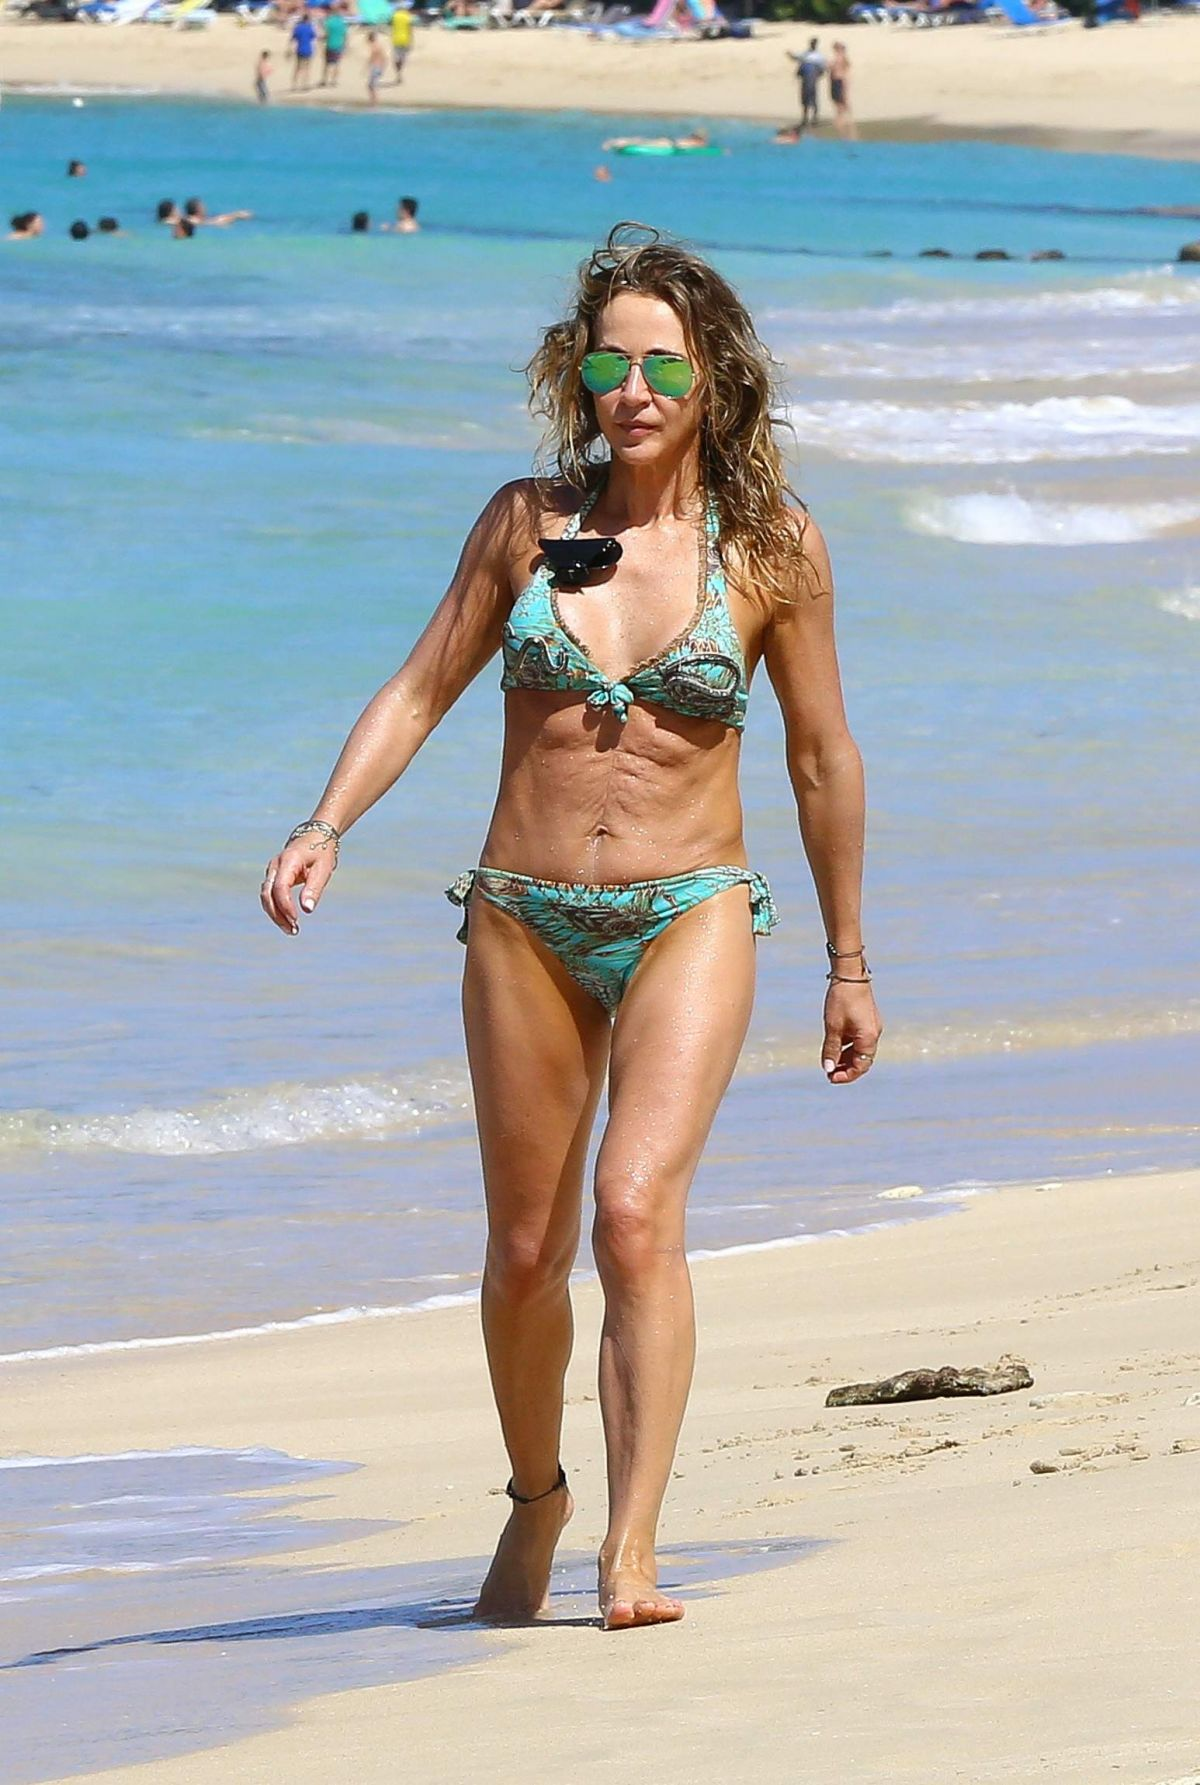 b55fe25372 Michelle Lineker In bikini on the beach in Barbados - Celebzz